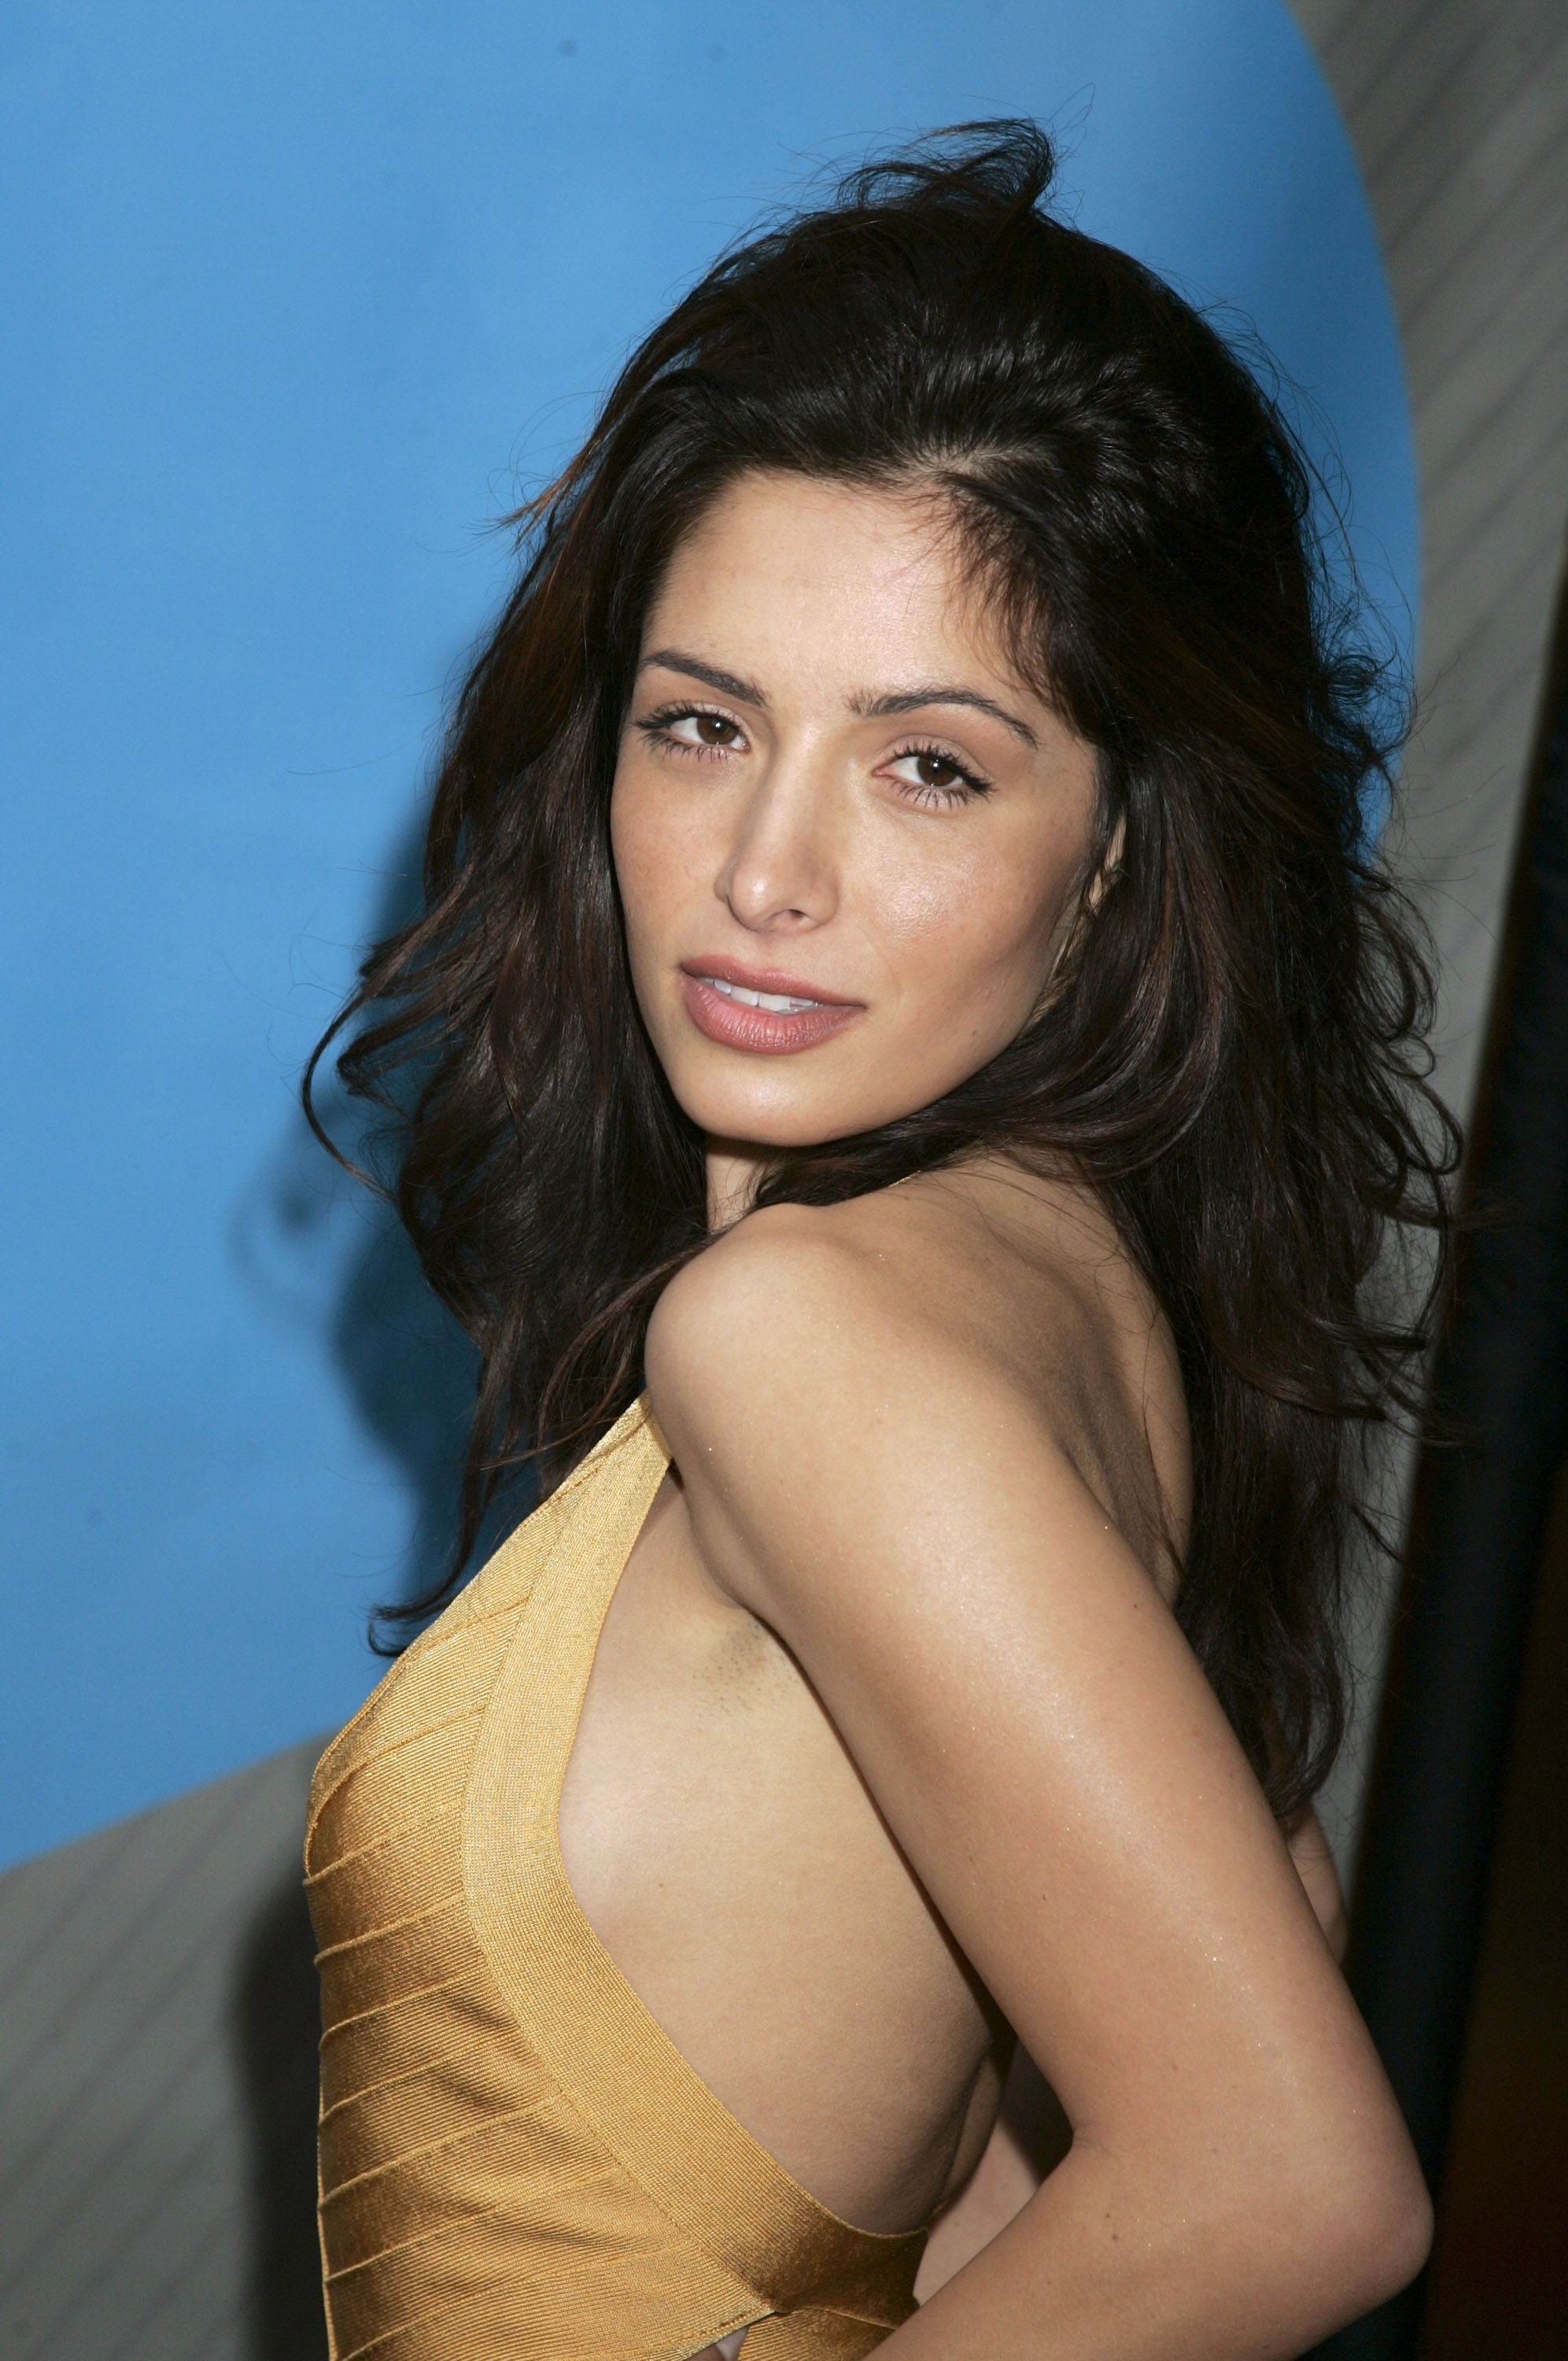 Advertise in print or online The Sacramento Bee Sarah shahi photo gallery